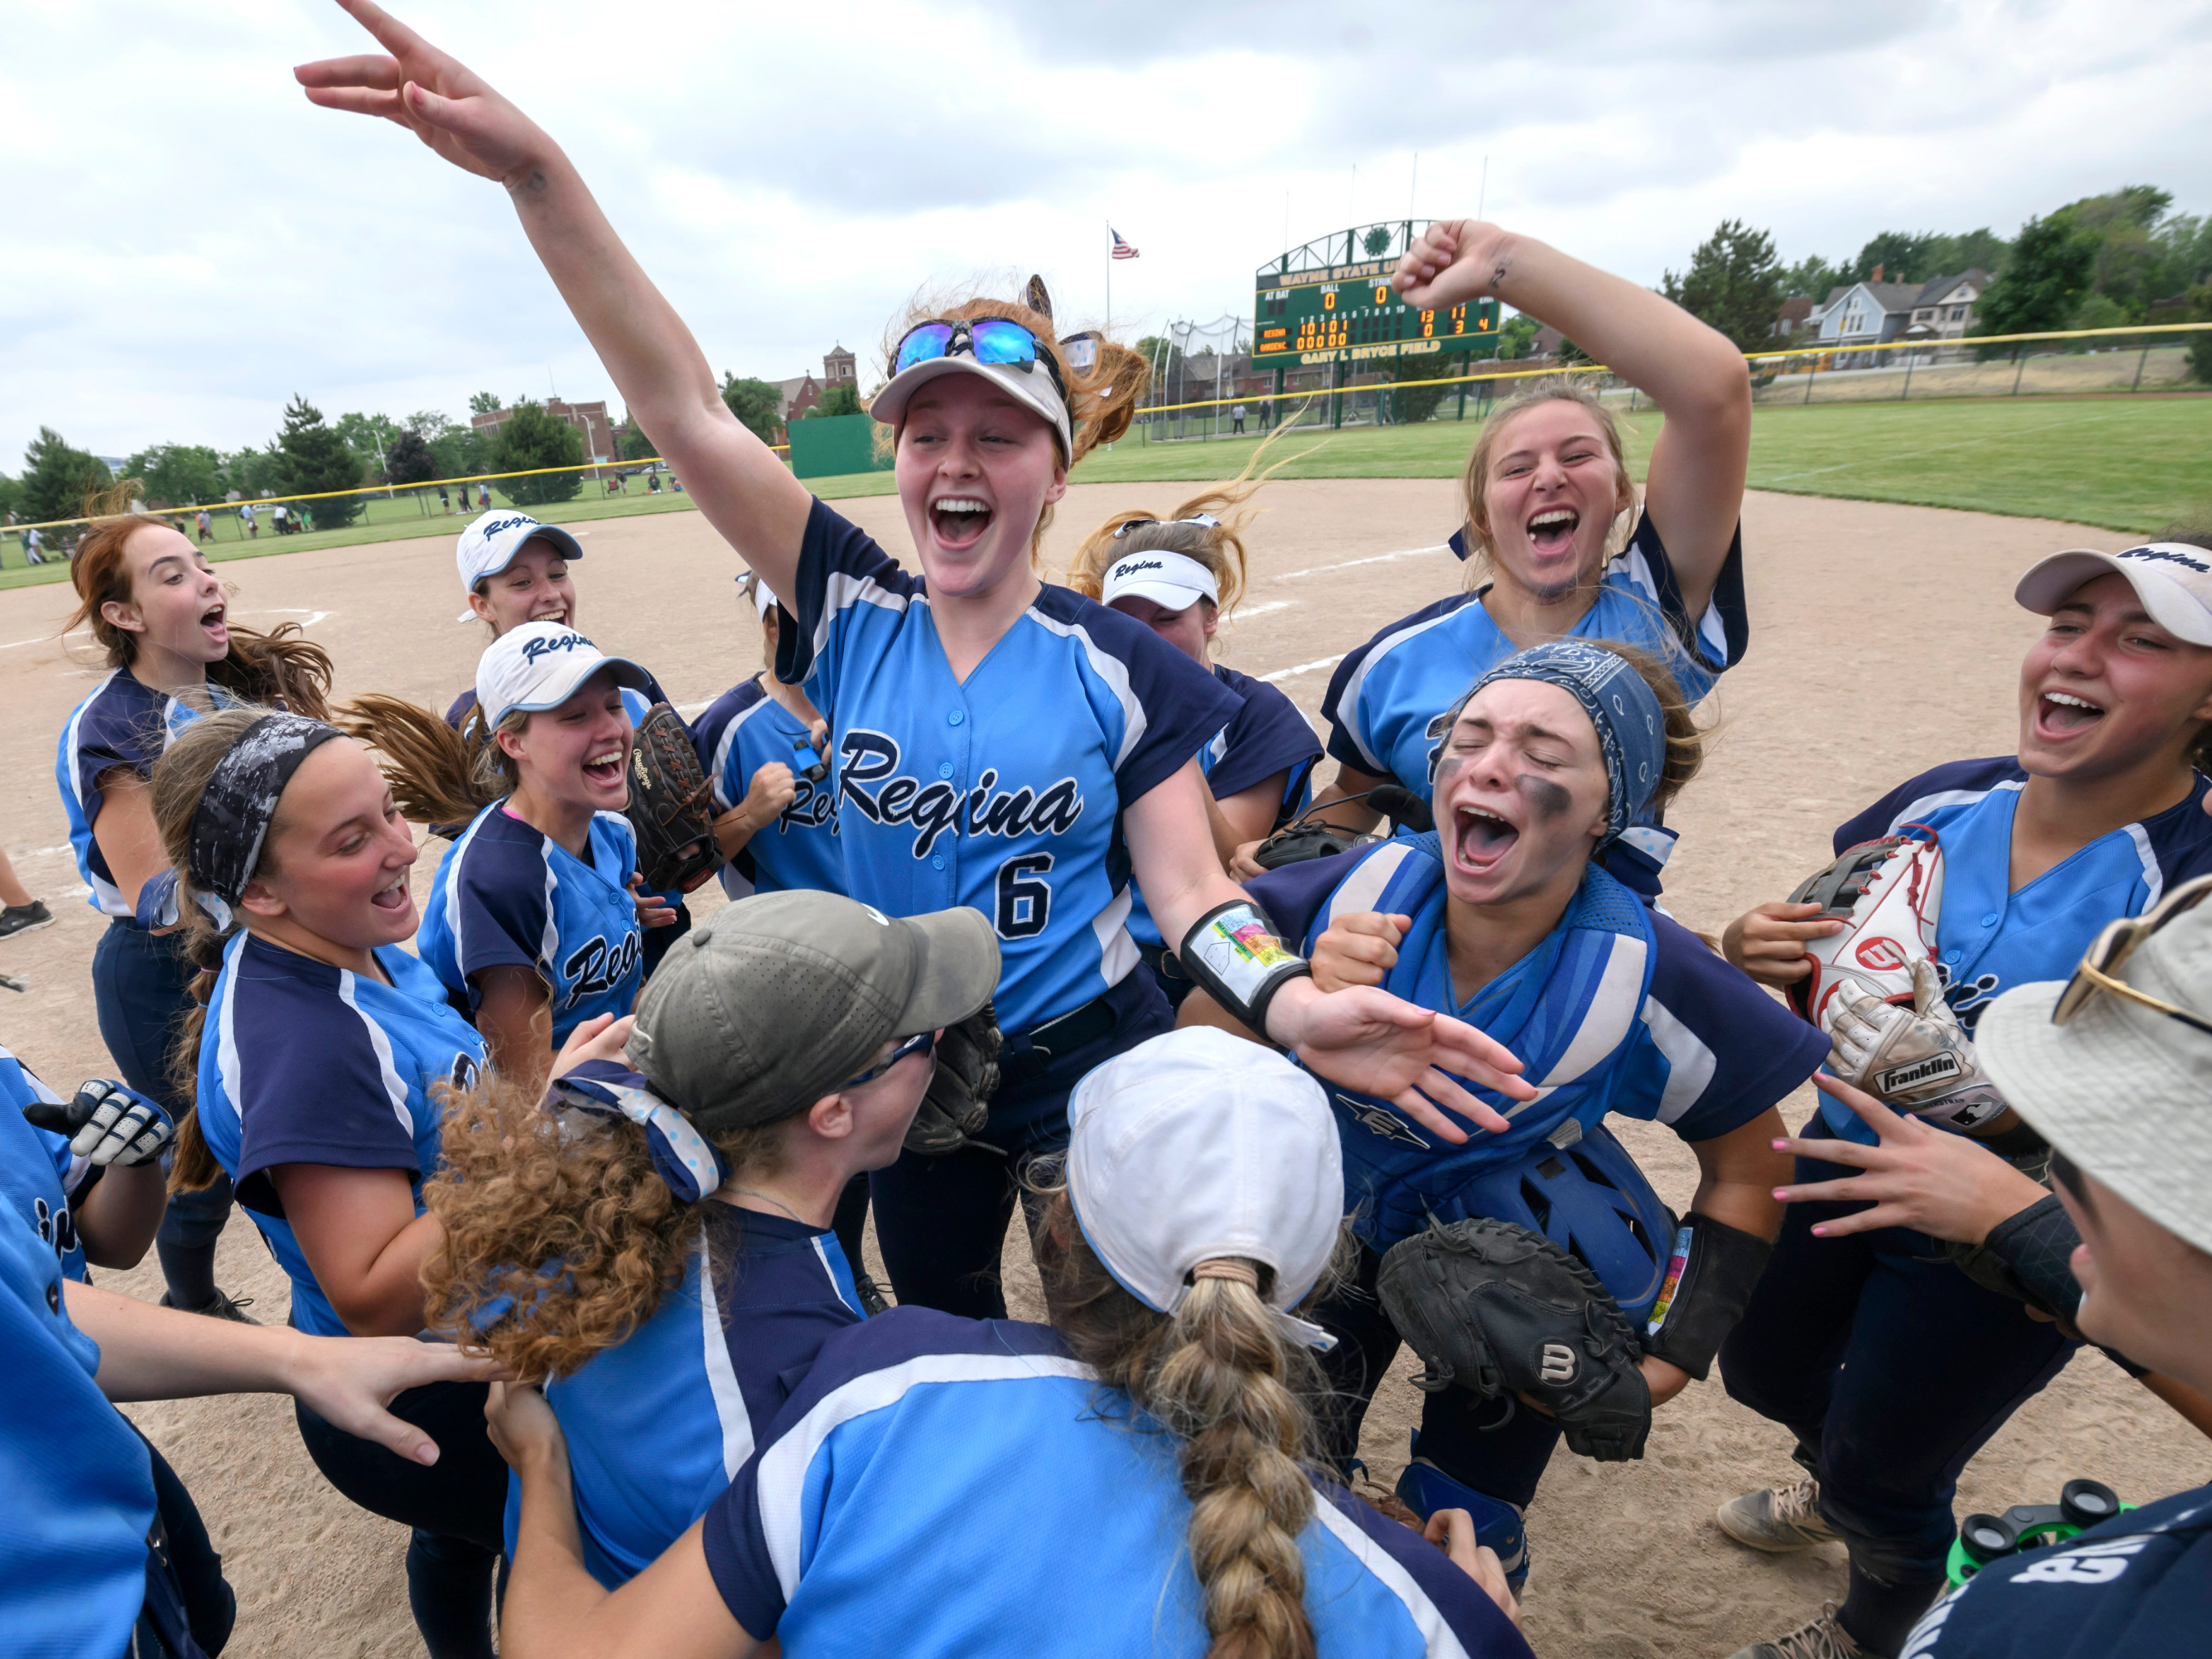 Meghan Berlin (6) and her Warren Regina softball teammates celebrate after defeating Garden City 13-0 during the MHSAA softball quarterfinals at Wayne State University, in Detroit, June 12, 2018. Regina lost 1-0 to eventual division one champions Caledonia.